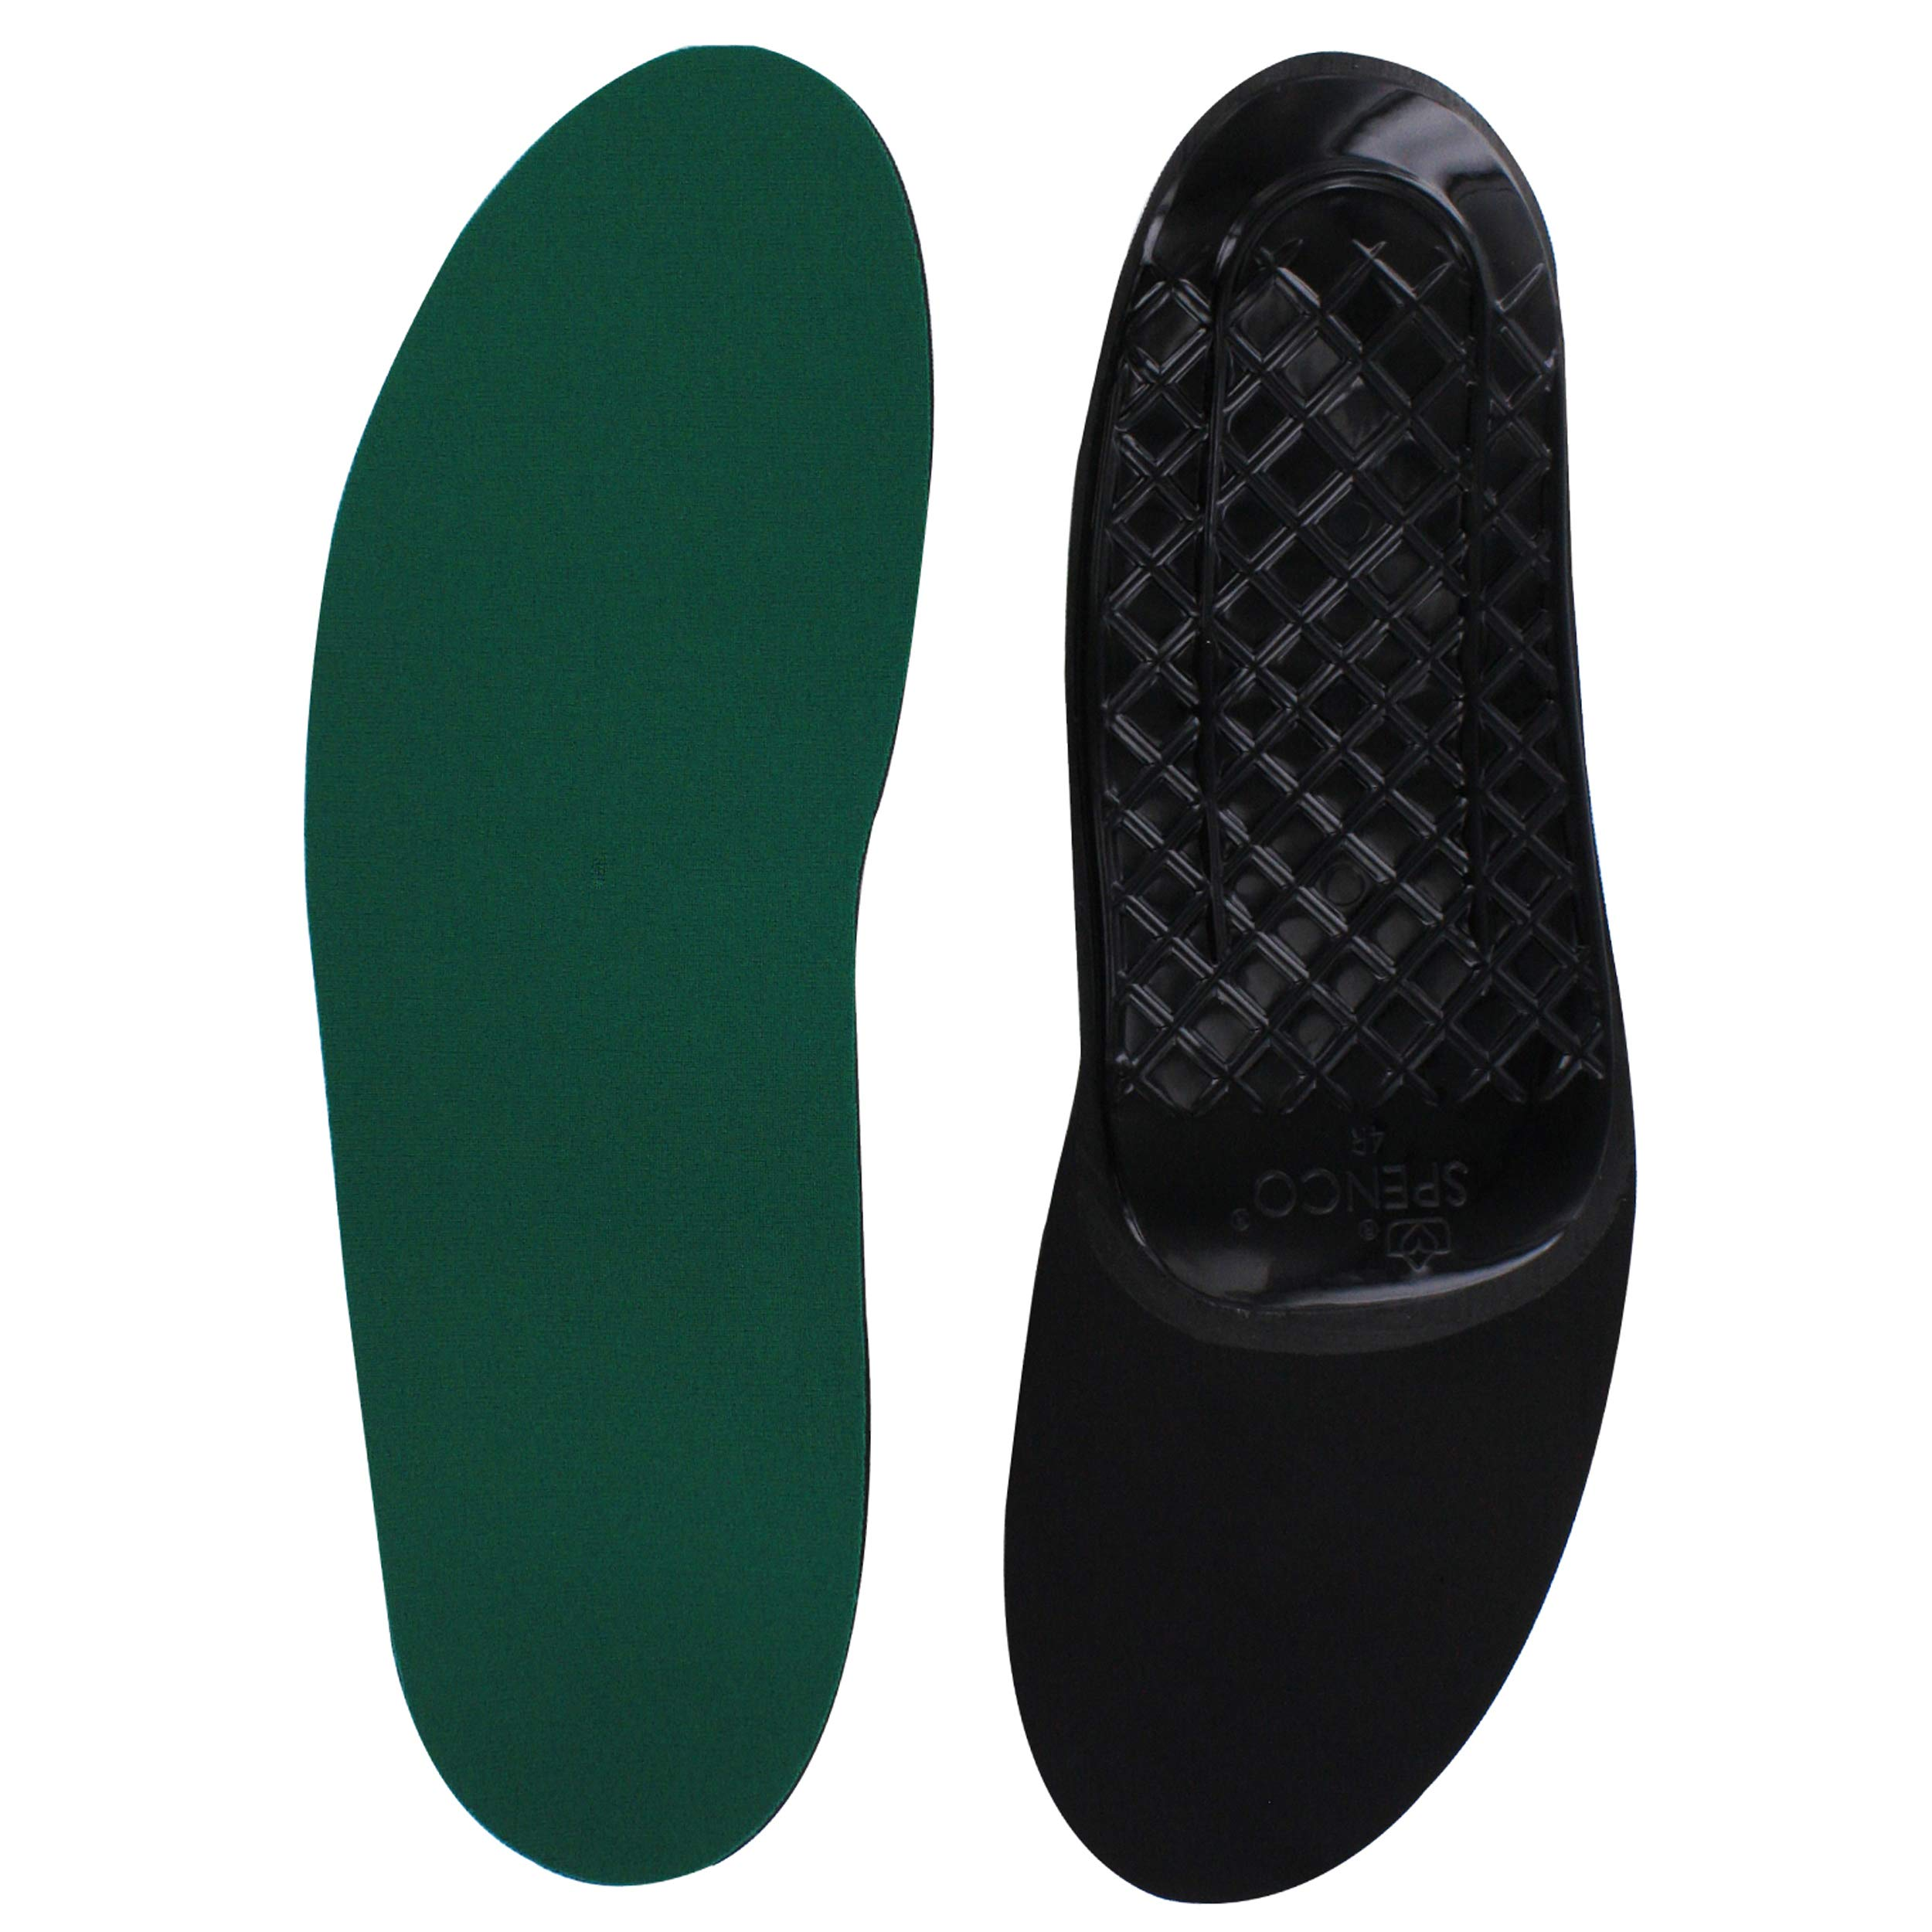 Spenco Rx Orthotic Arch Support Full Length Shoe Insoles, Women's 11-12.5/Men's 10-11.5 by Spenco